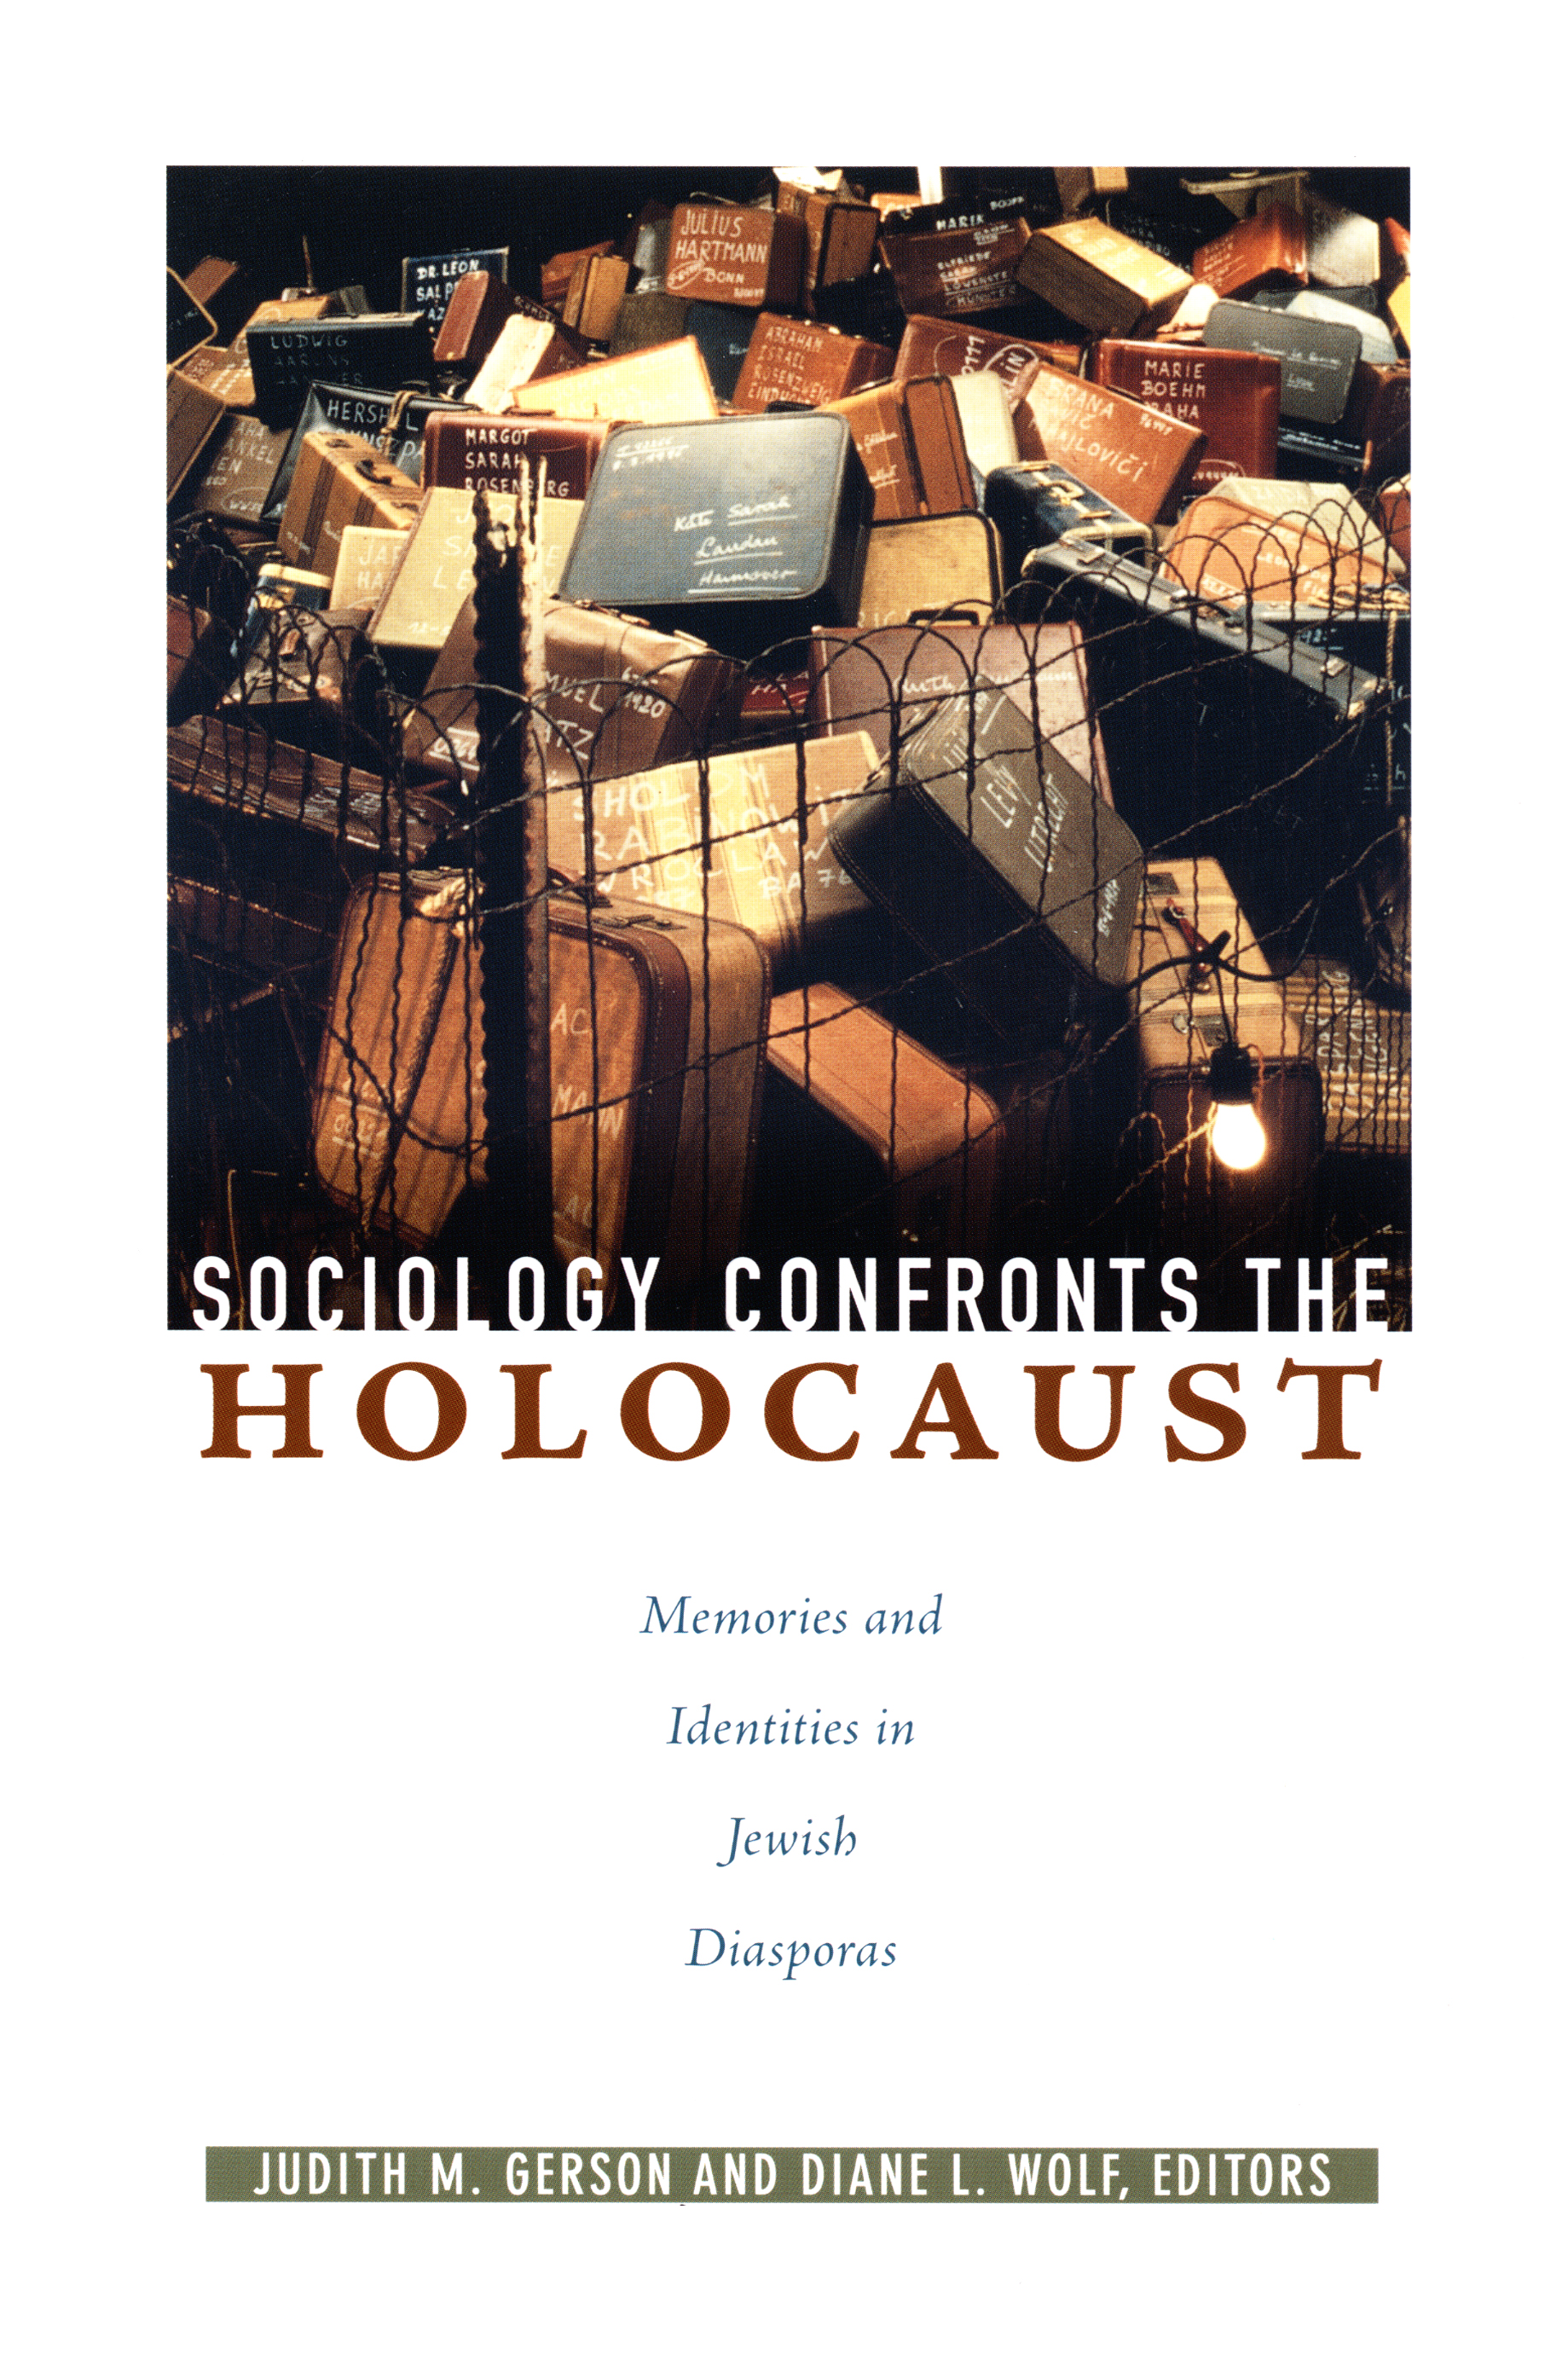 a reflection from a jewish perspective on a holocaust